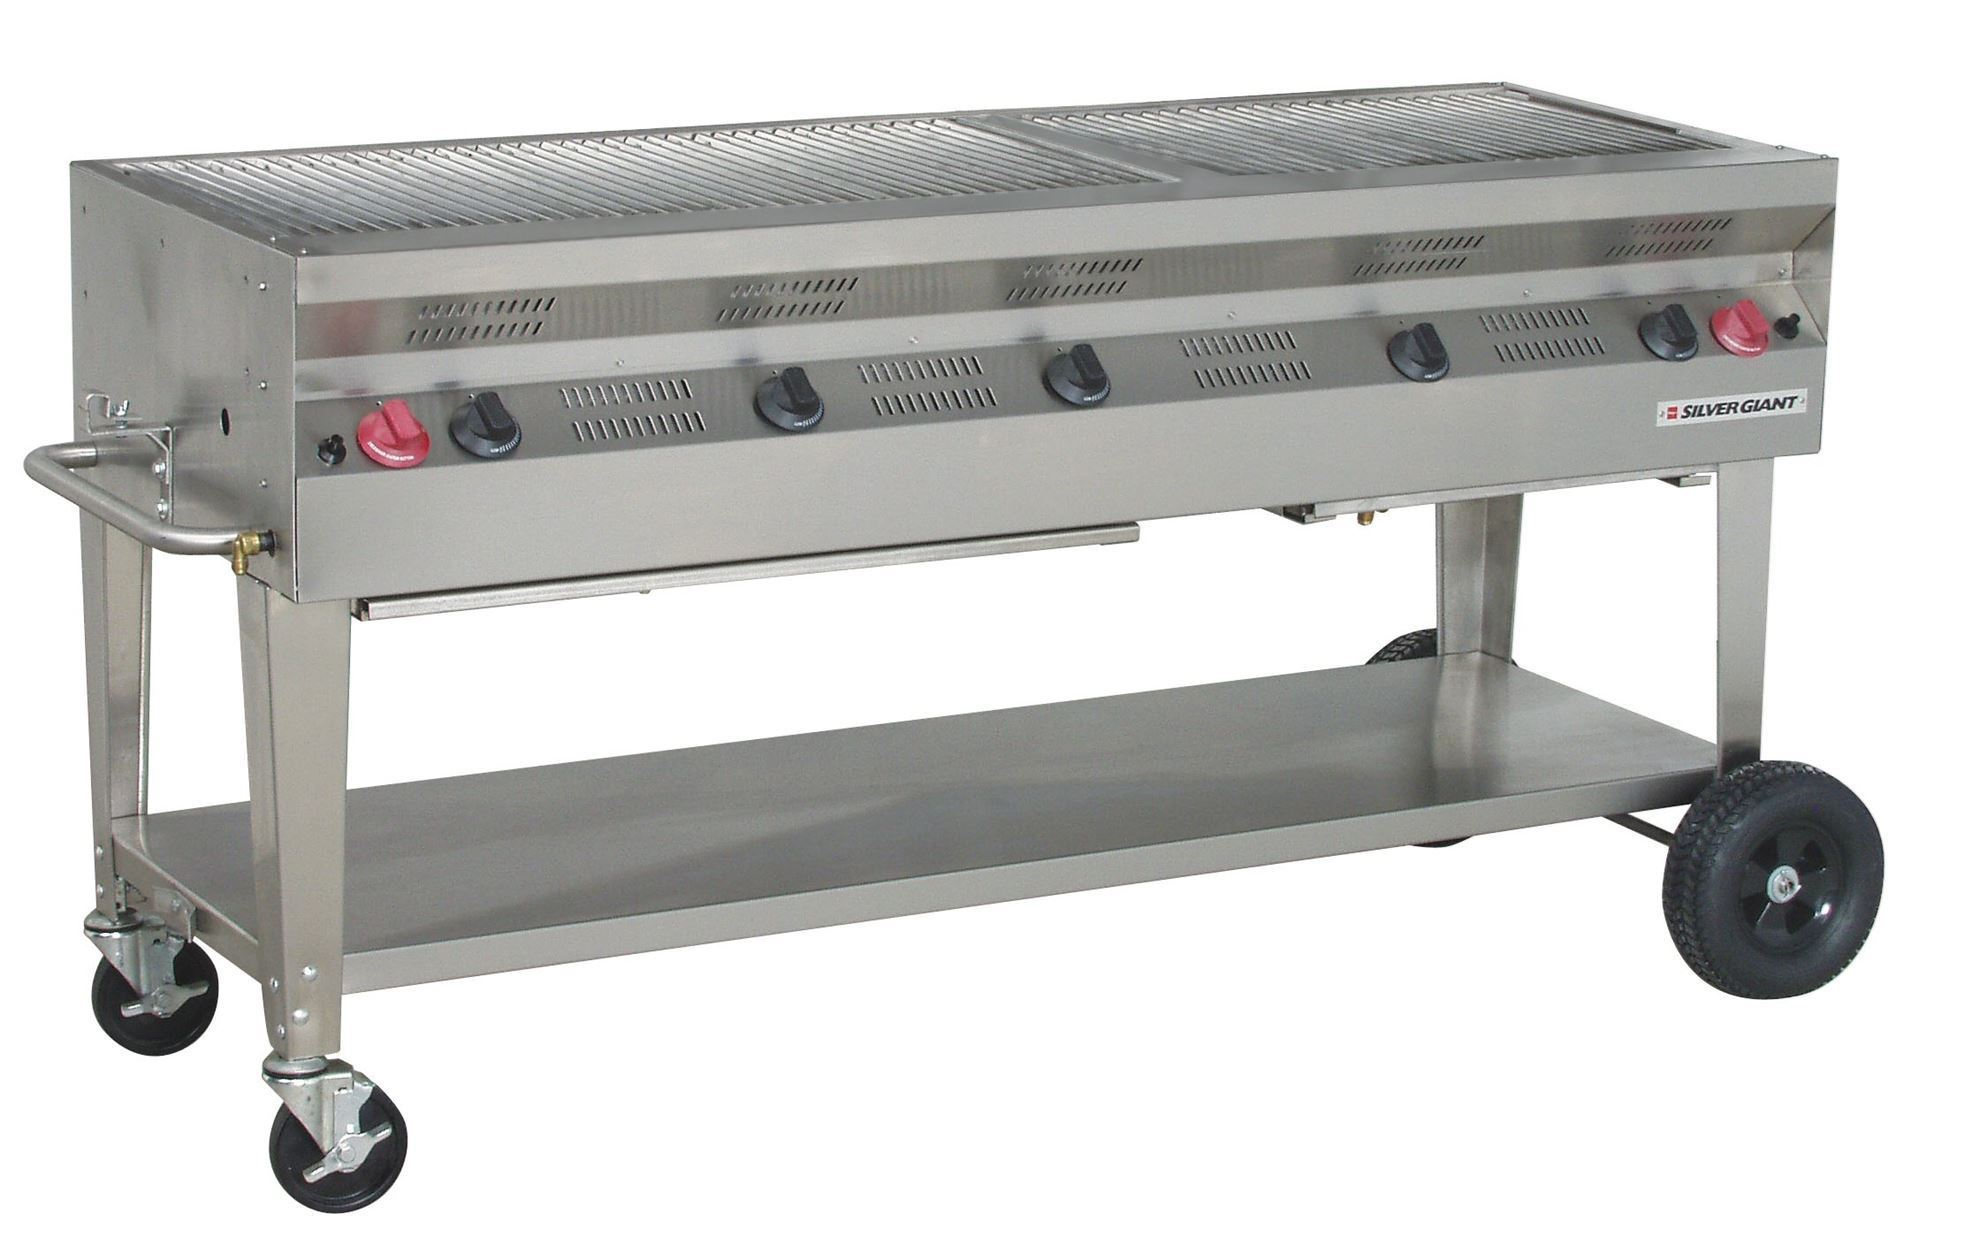 Silver giant quot commercial stainless steel barbecue grill